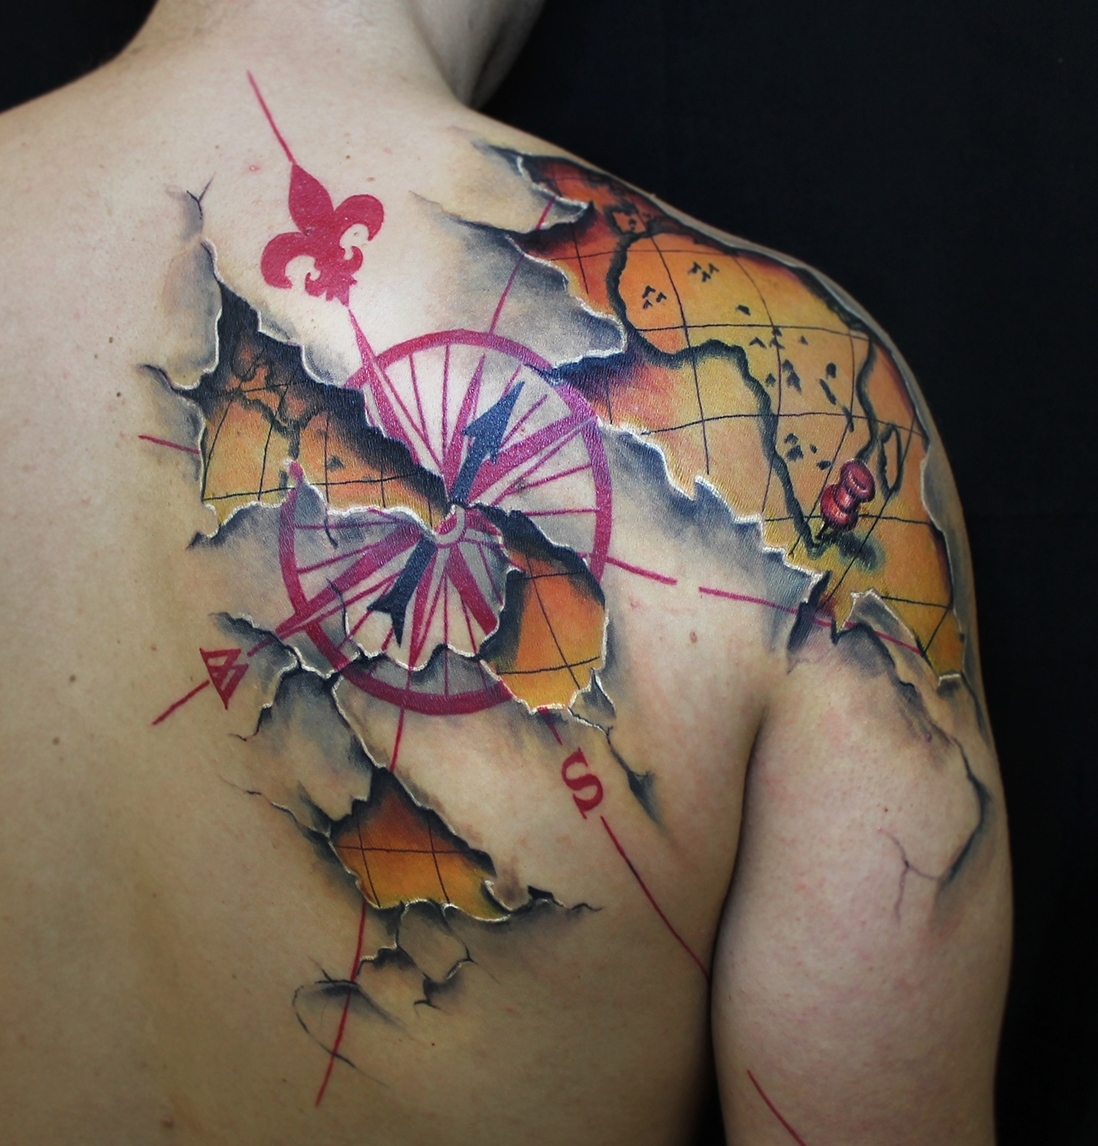 3d map tattoo design design of tattoosdesign of tattoos 3d map tattoo design gumiabroncs Images